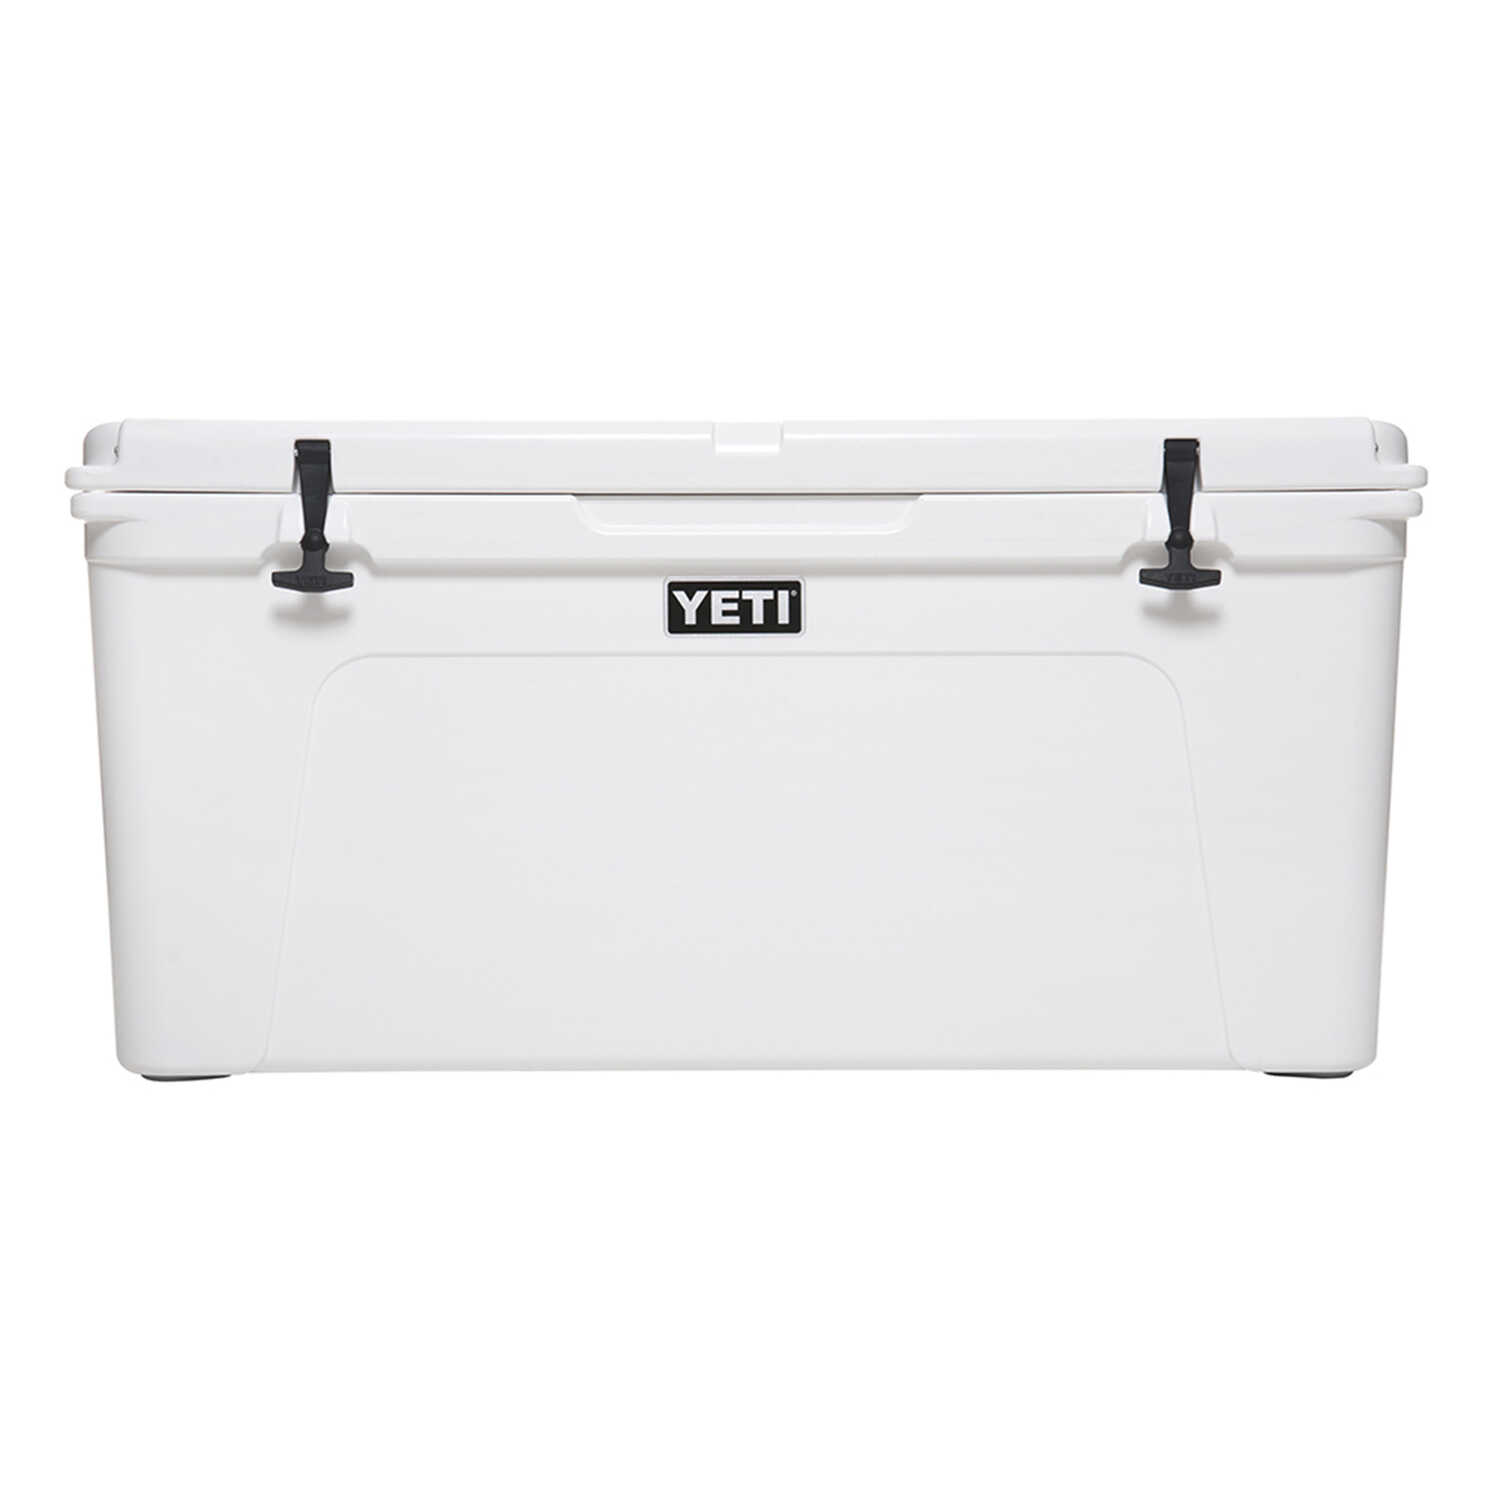 YETI  Tundra 125  Cooler  81 cans White